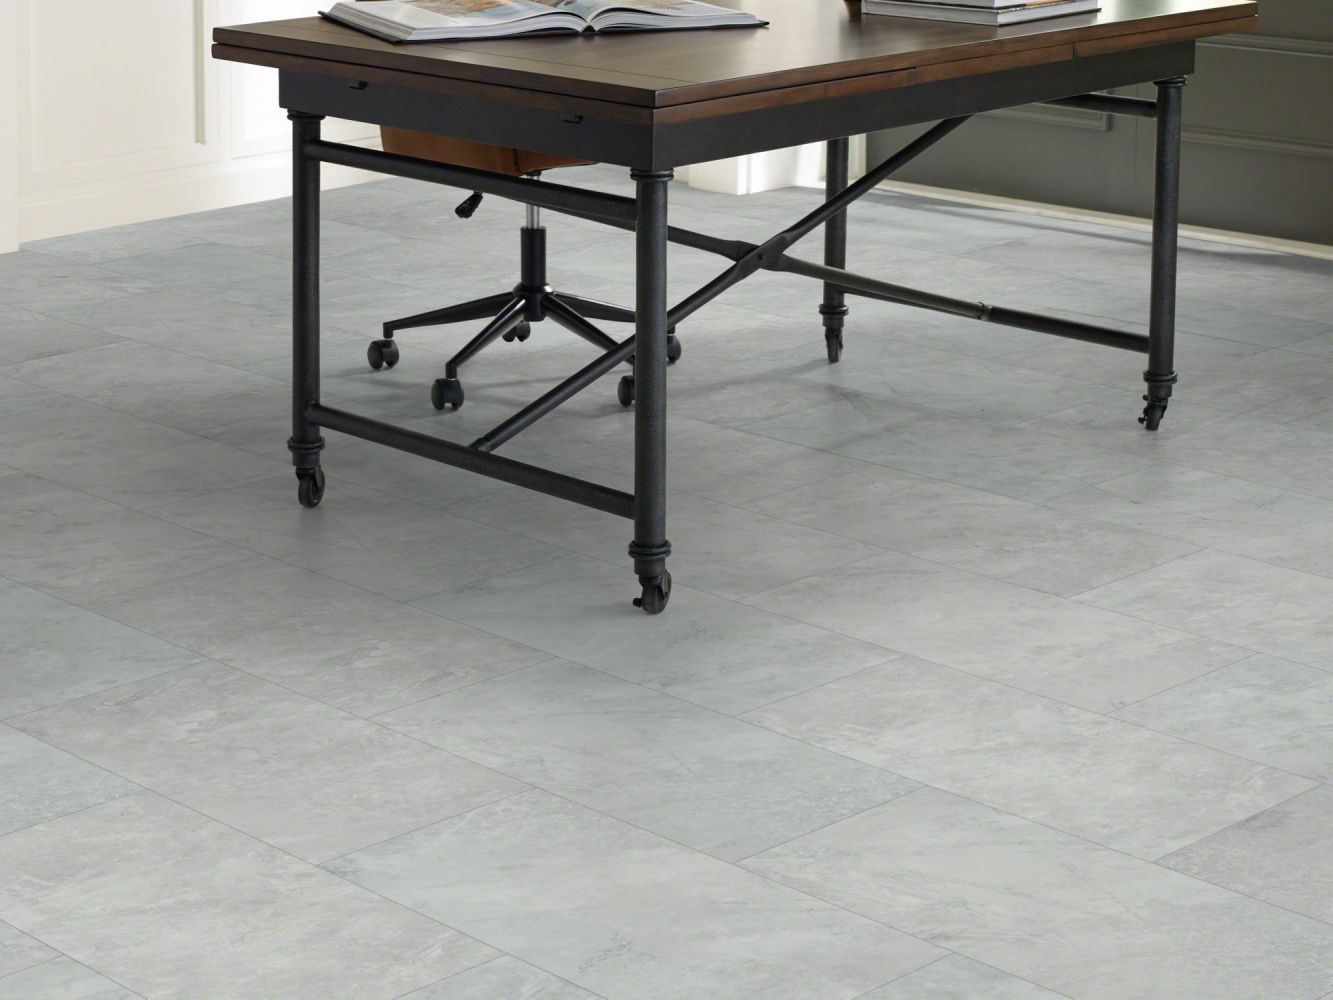 Shaw Floors Resilient Residential Paragon Tile Plus Pearl 05064_1022V